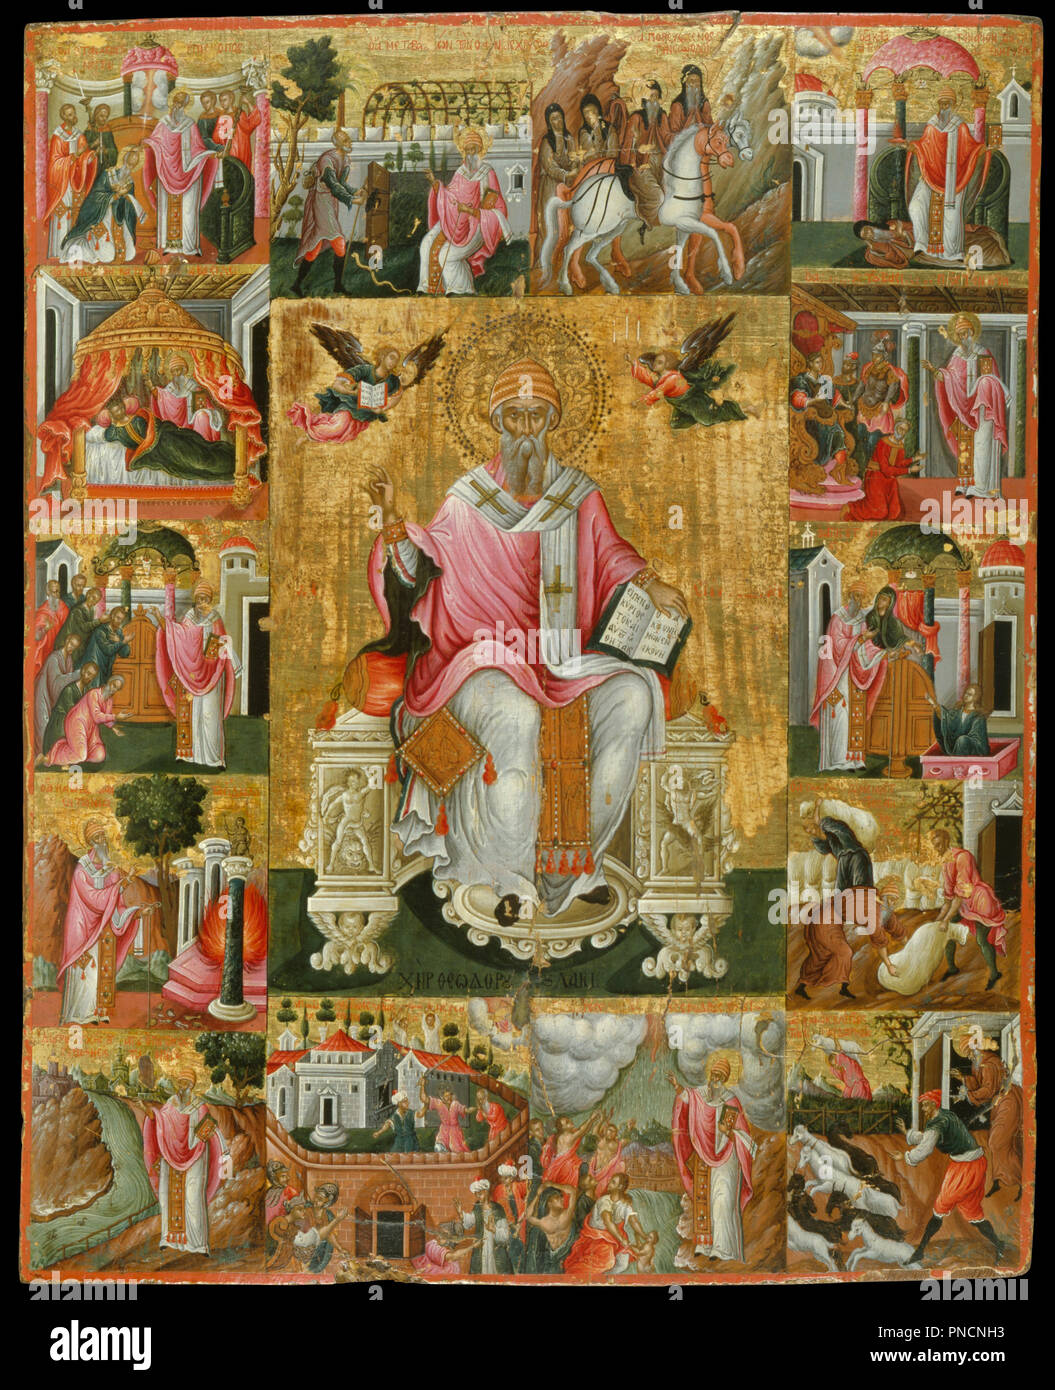 St Spyridon and scenes from his life. Date/Period: 1650 - 1699. Icon. Height: 562 mm (22.12 in); Width: 452 mm (17.79 in). Author: Poulakis Theodoros. Poulakis, Theodore. - Stock Image